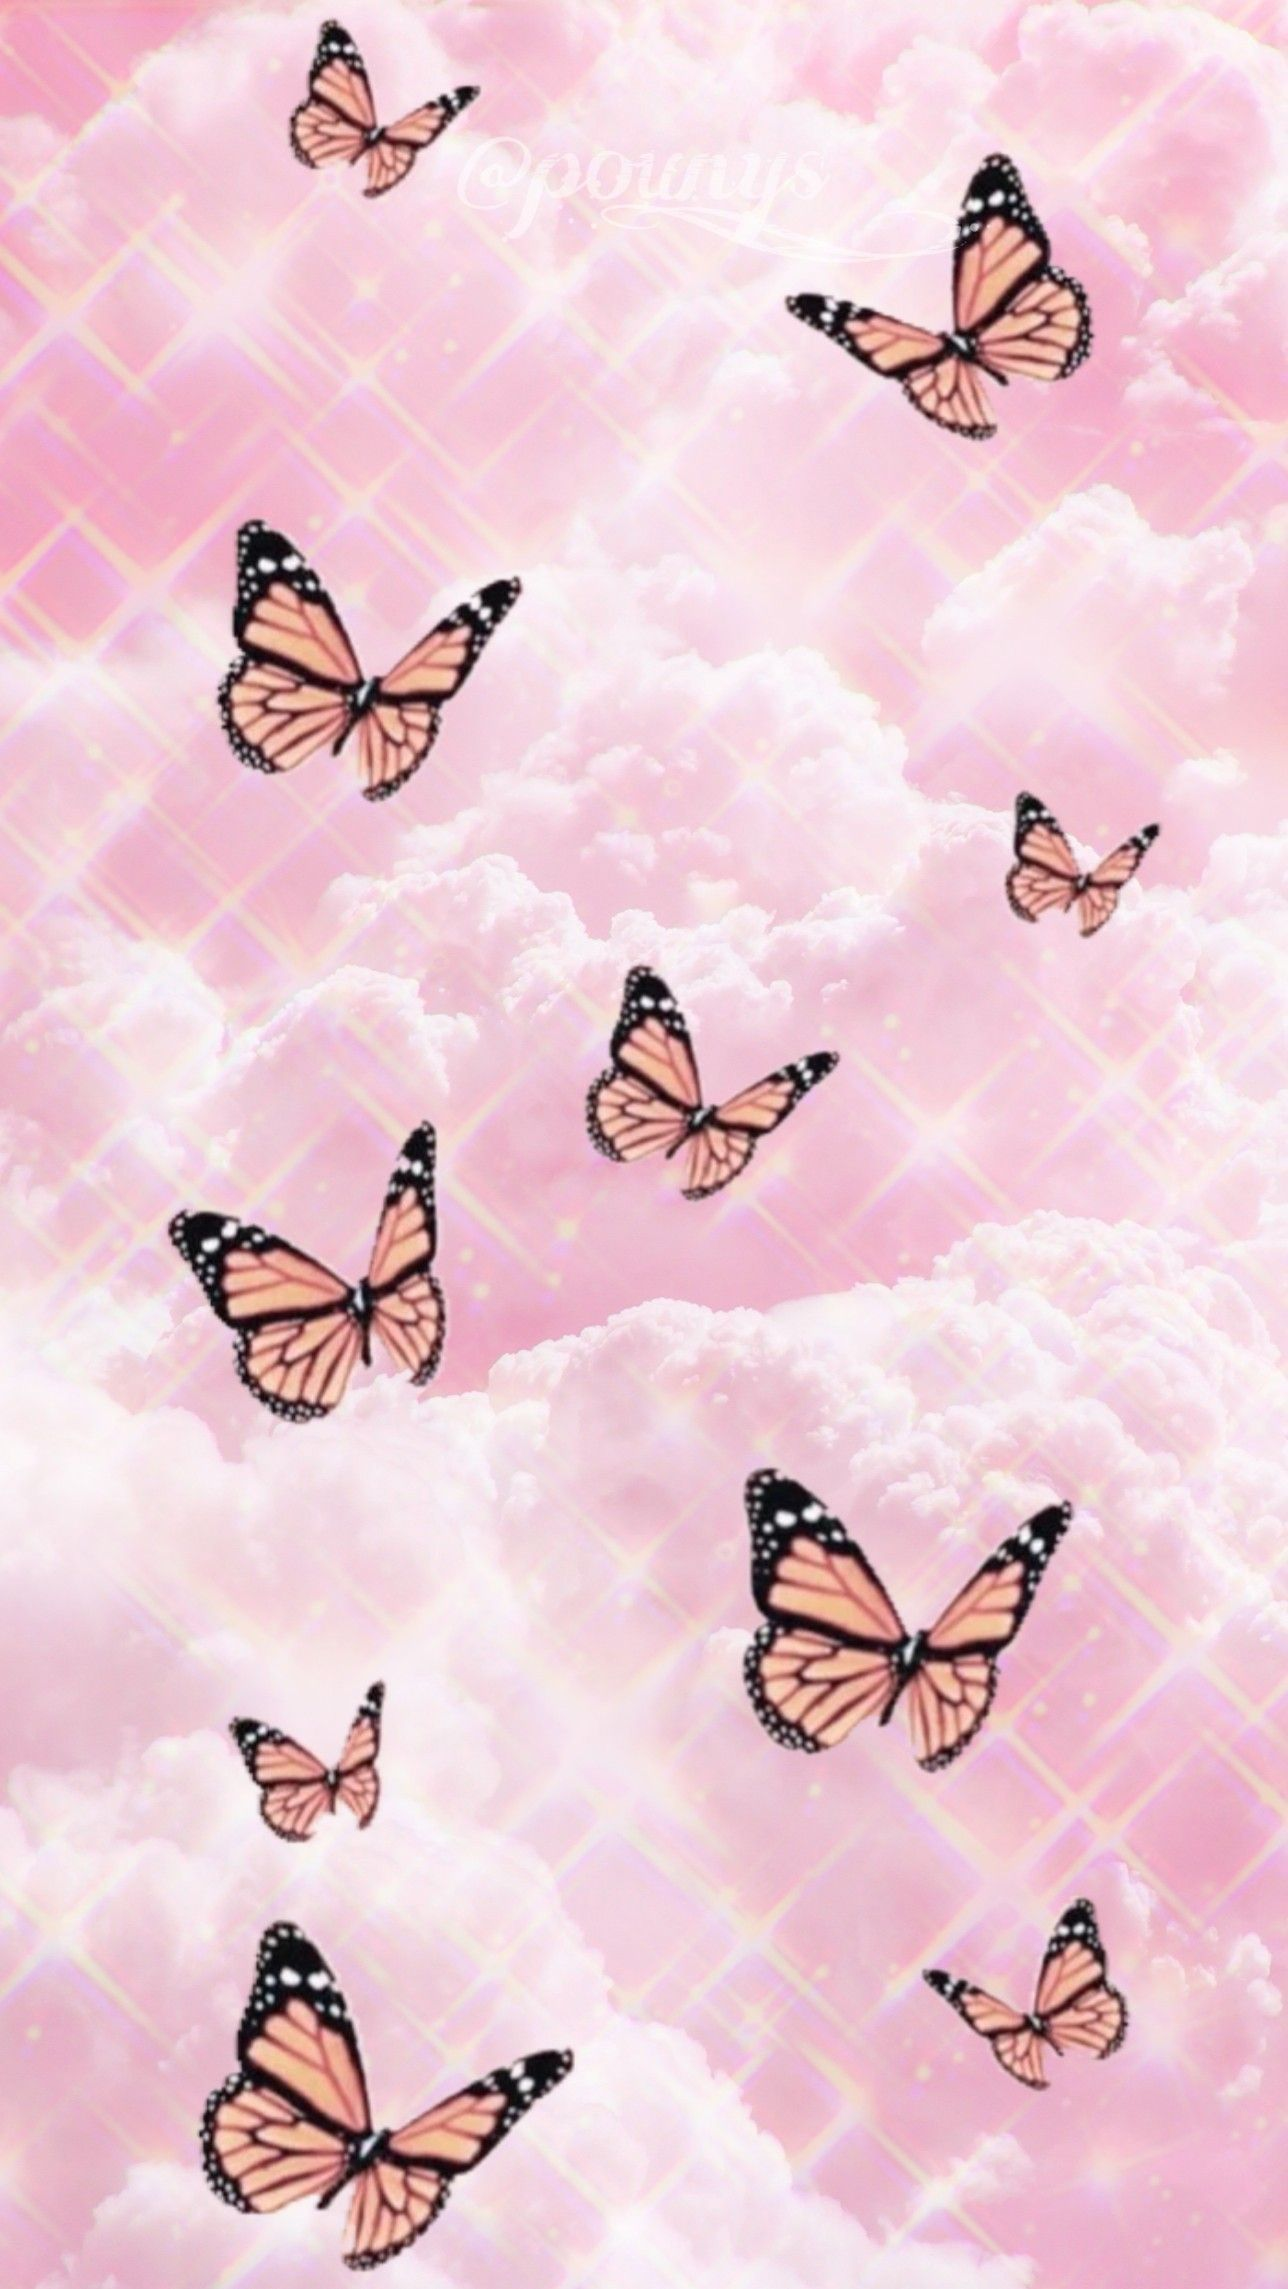 Butterfly Pink In 2020 Pink Wallpaper Backgrounds Butterfly Wallpaper Iphone Iphone Wallpaper Tumblr Aesthetic